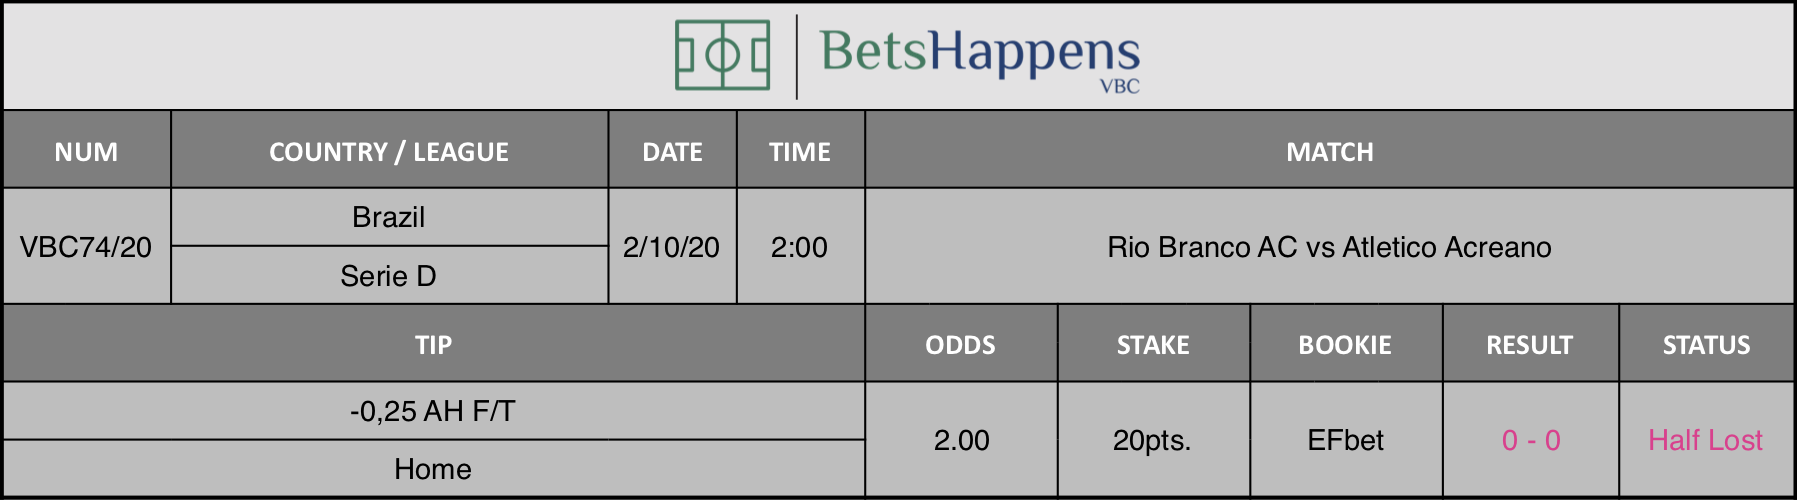 Results of our advice for the Rio Branco AC vs Atletico Acreano match in which -0.25 AH F / T Home is recommended.